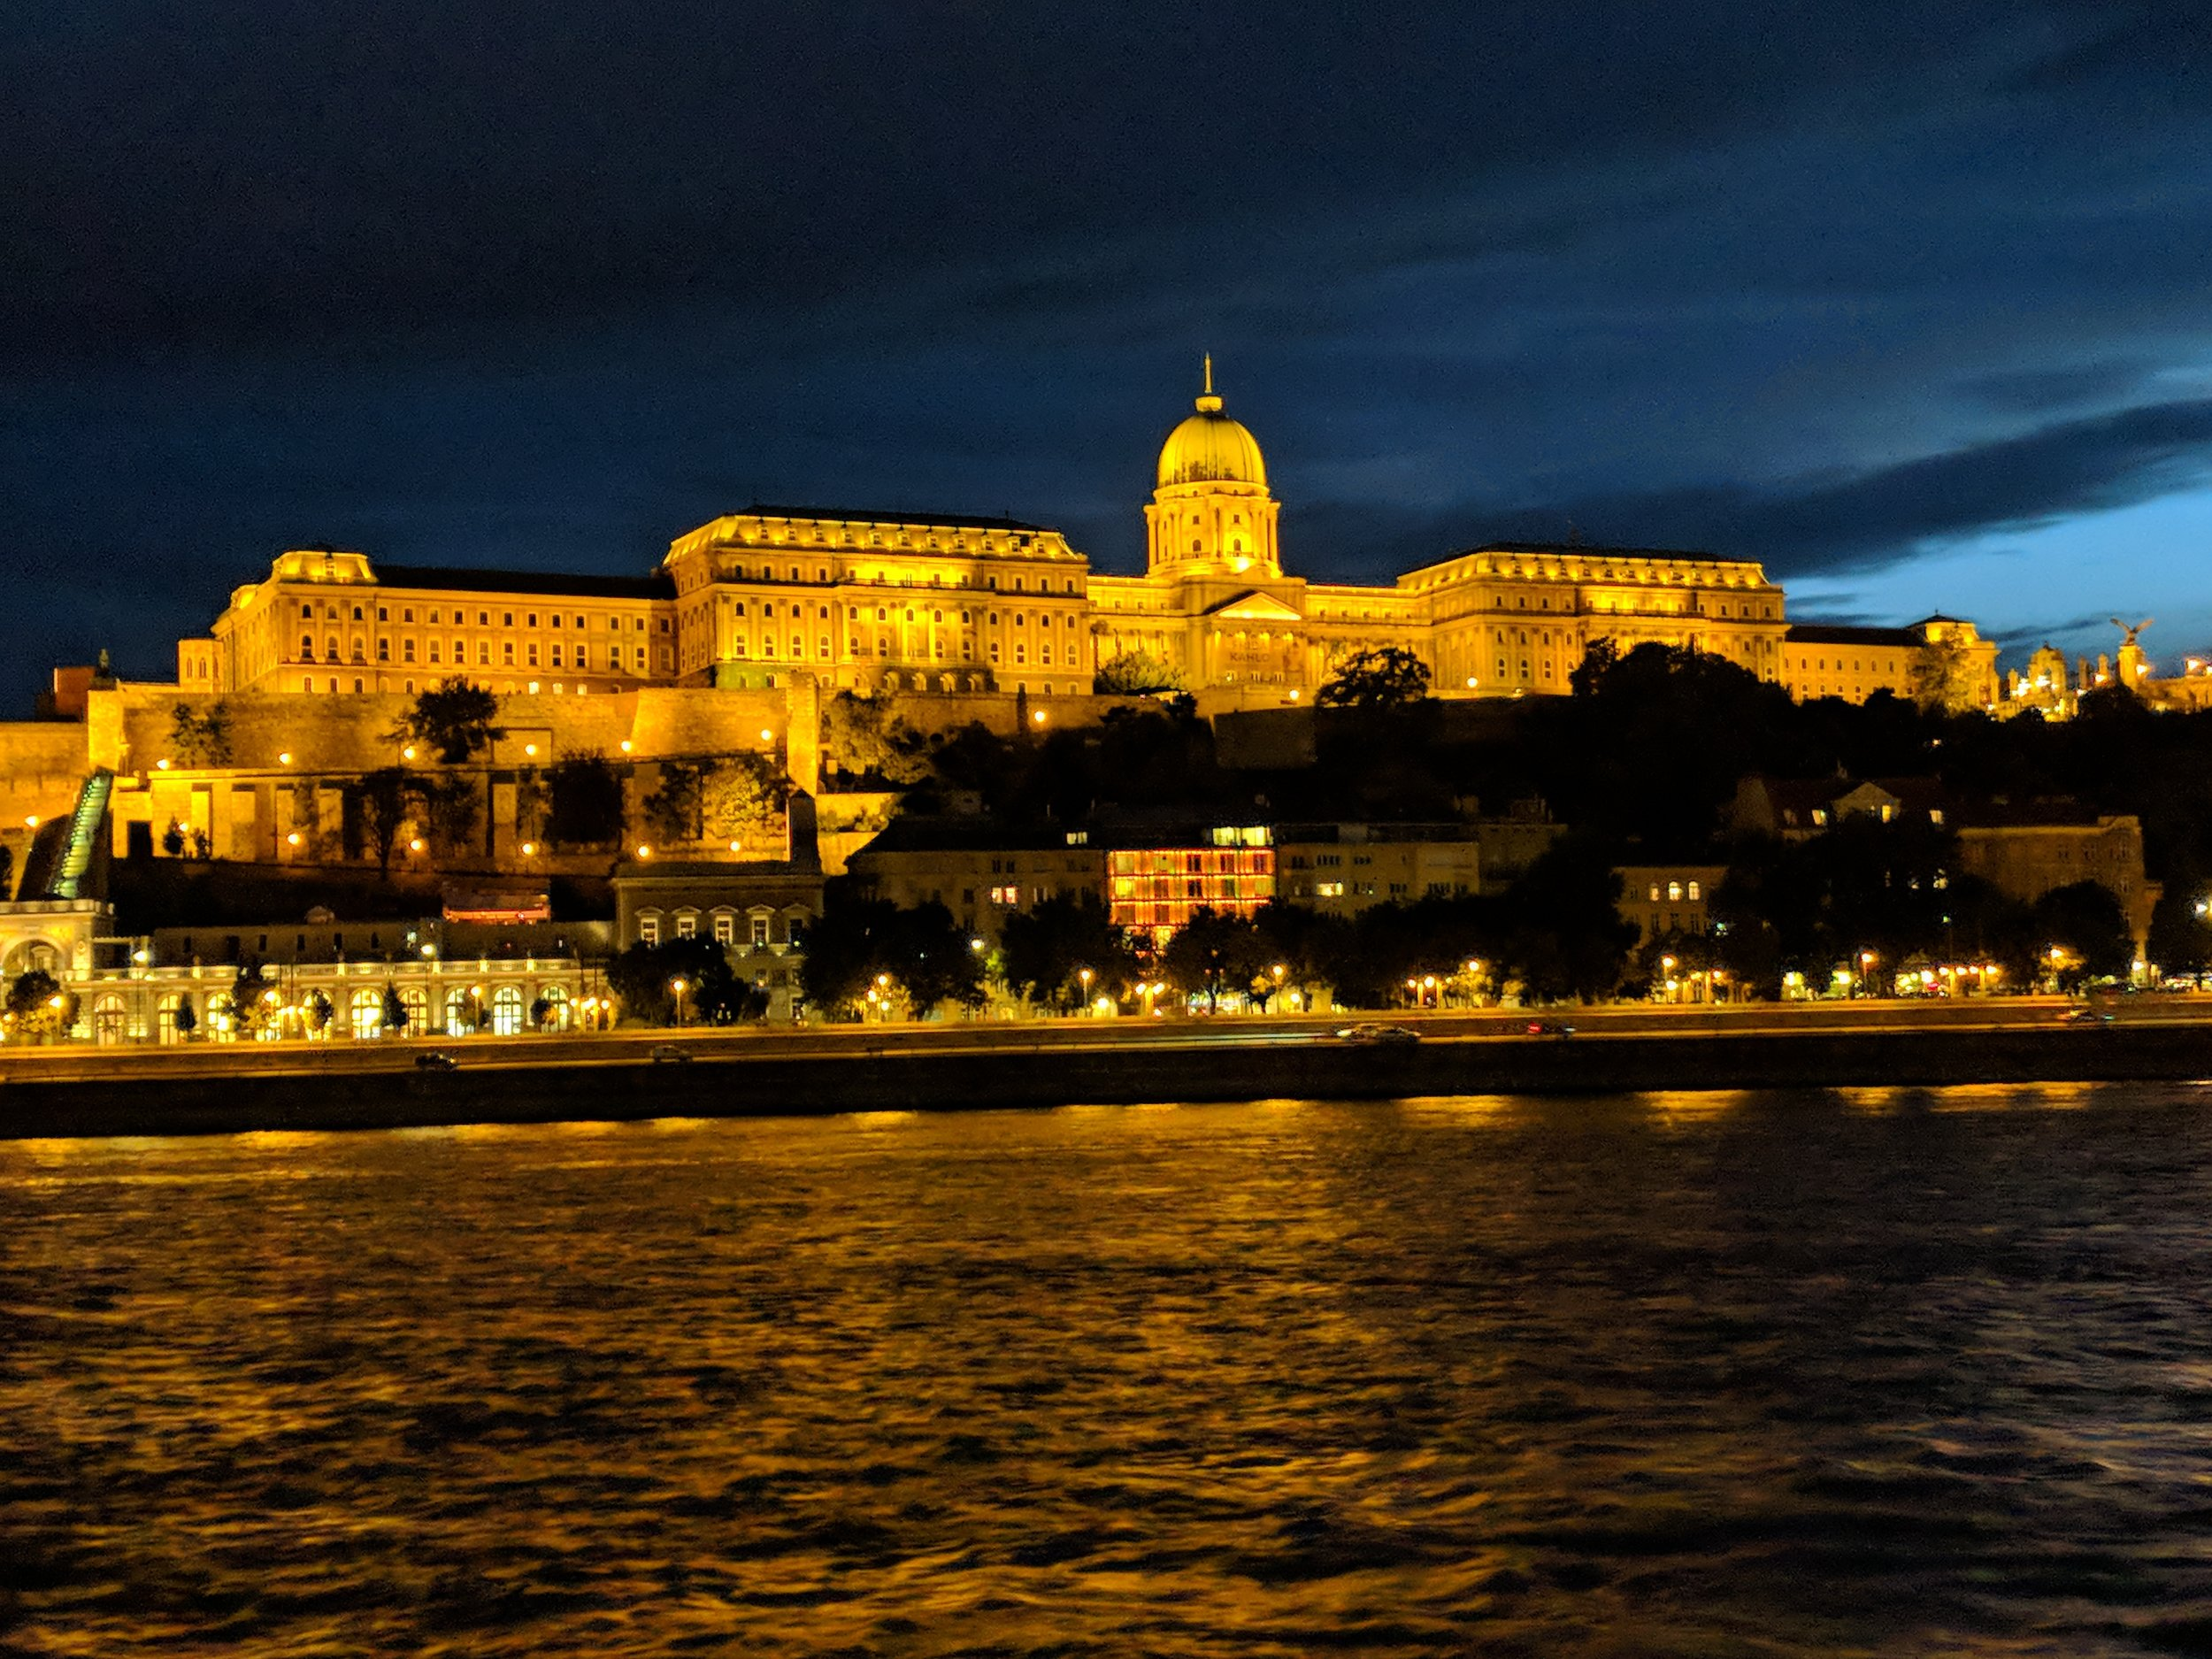 Pest, seen from the Danube River